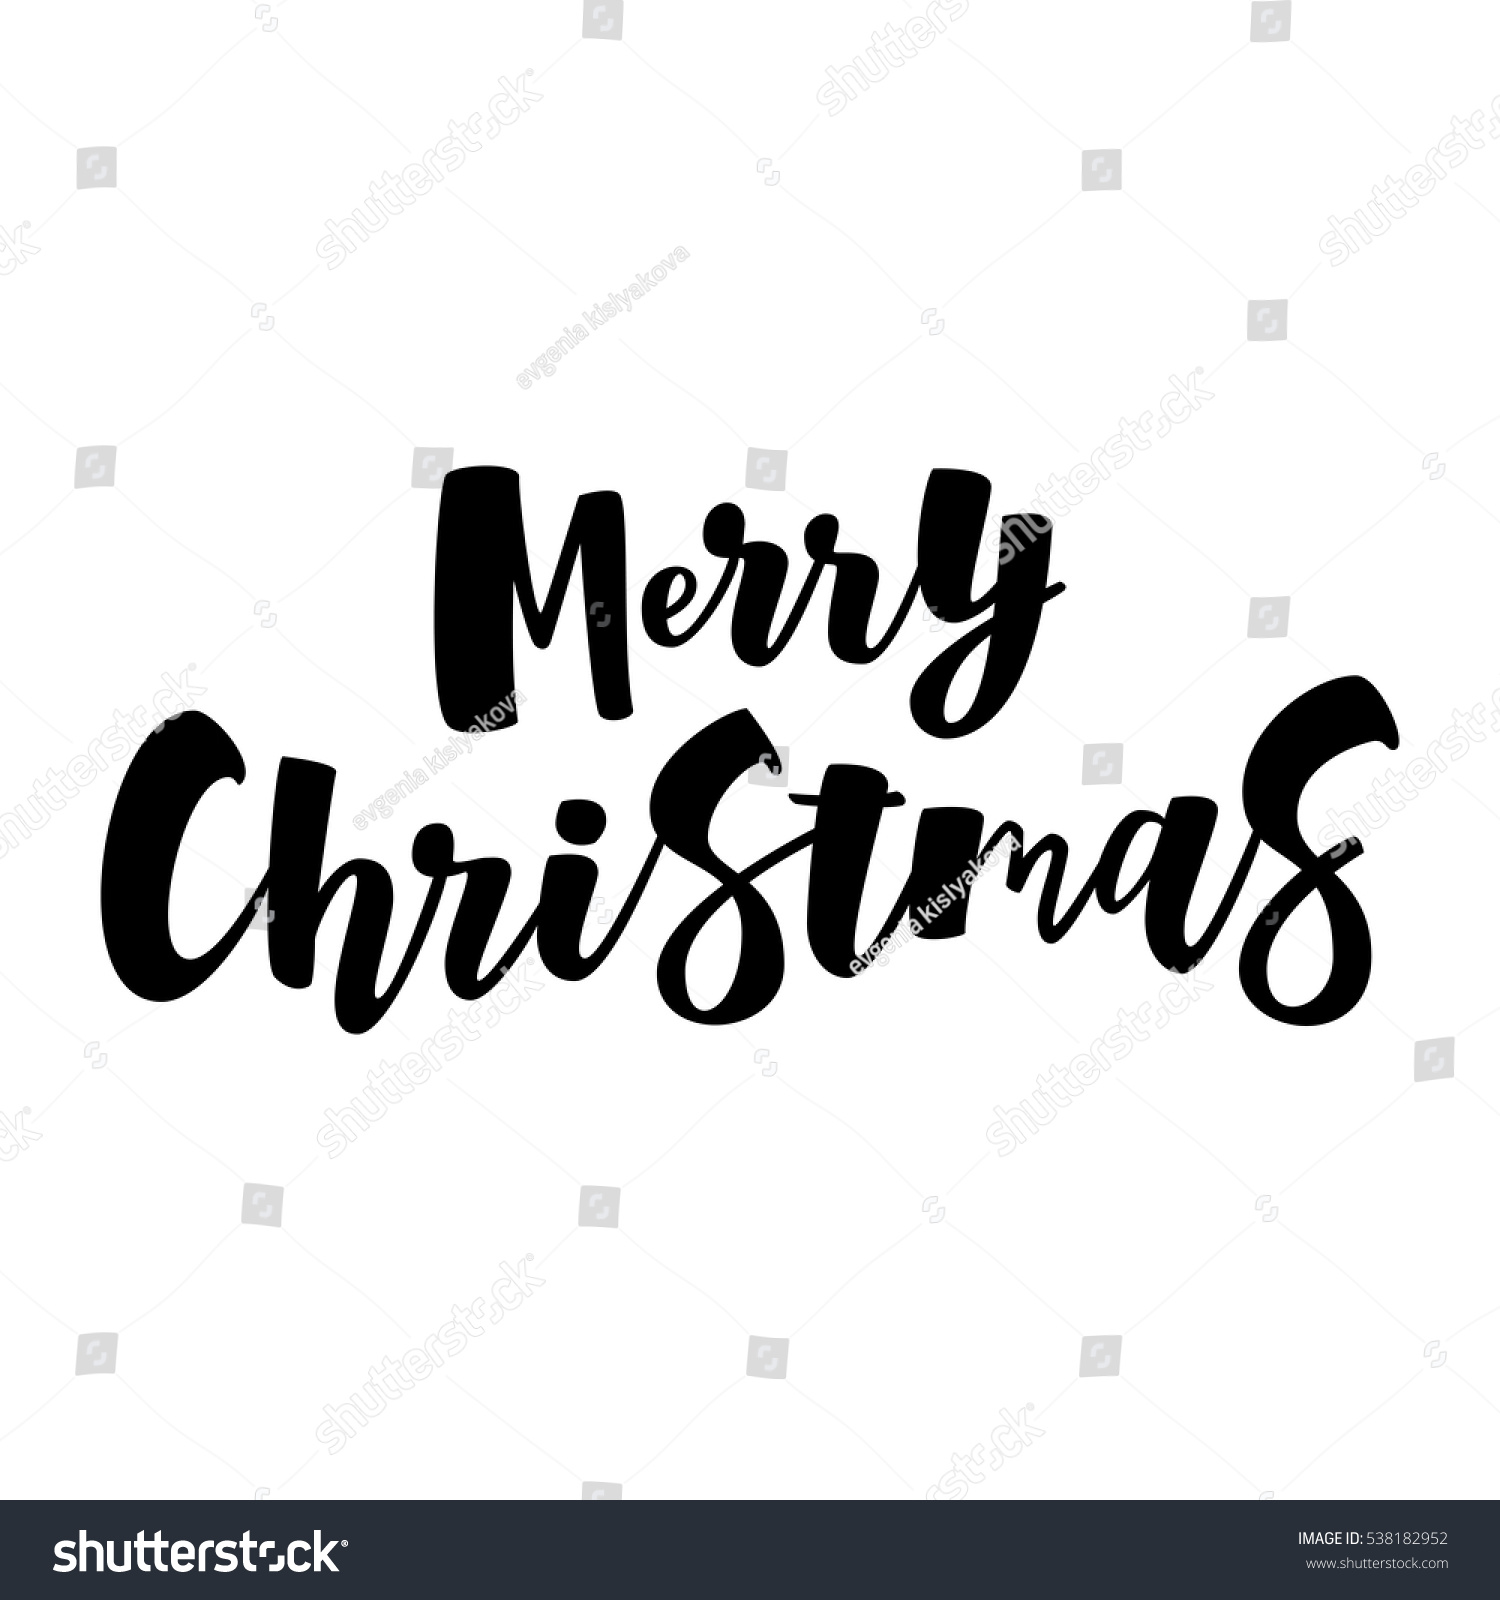 Christmas cards black and white idealstalist christmas cards black and white merry christmas greeting card black white m4hsunfo